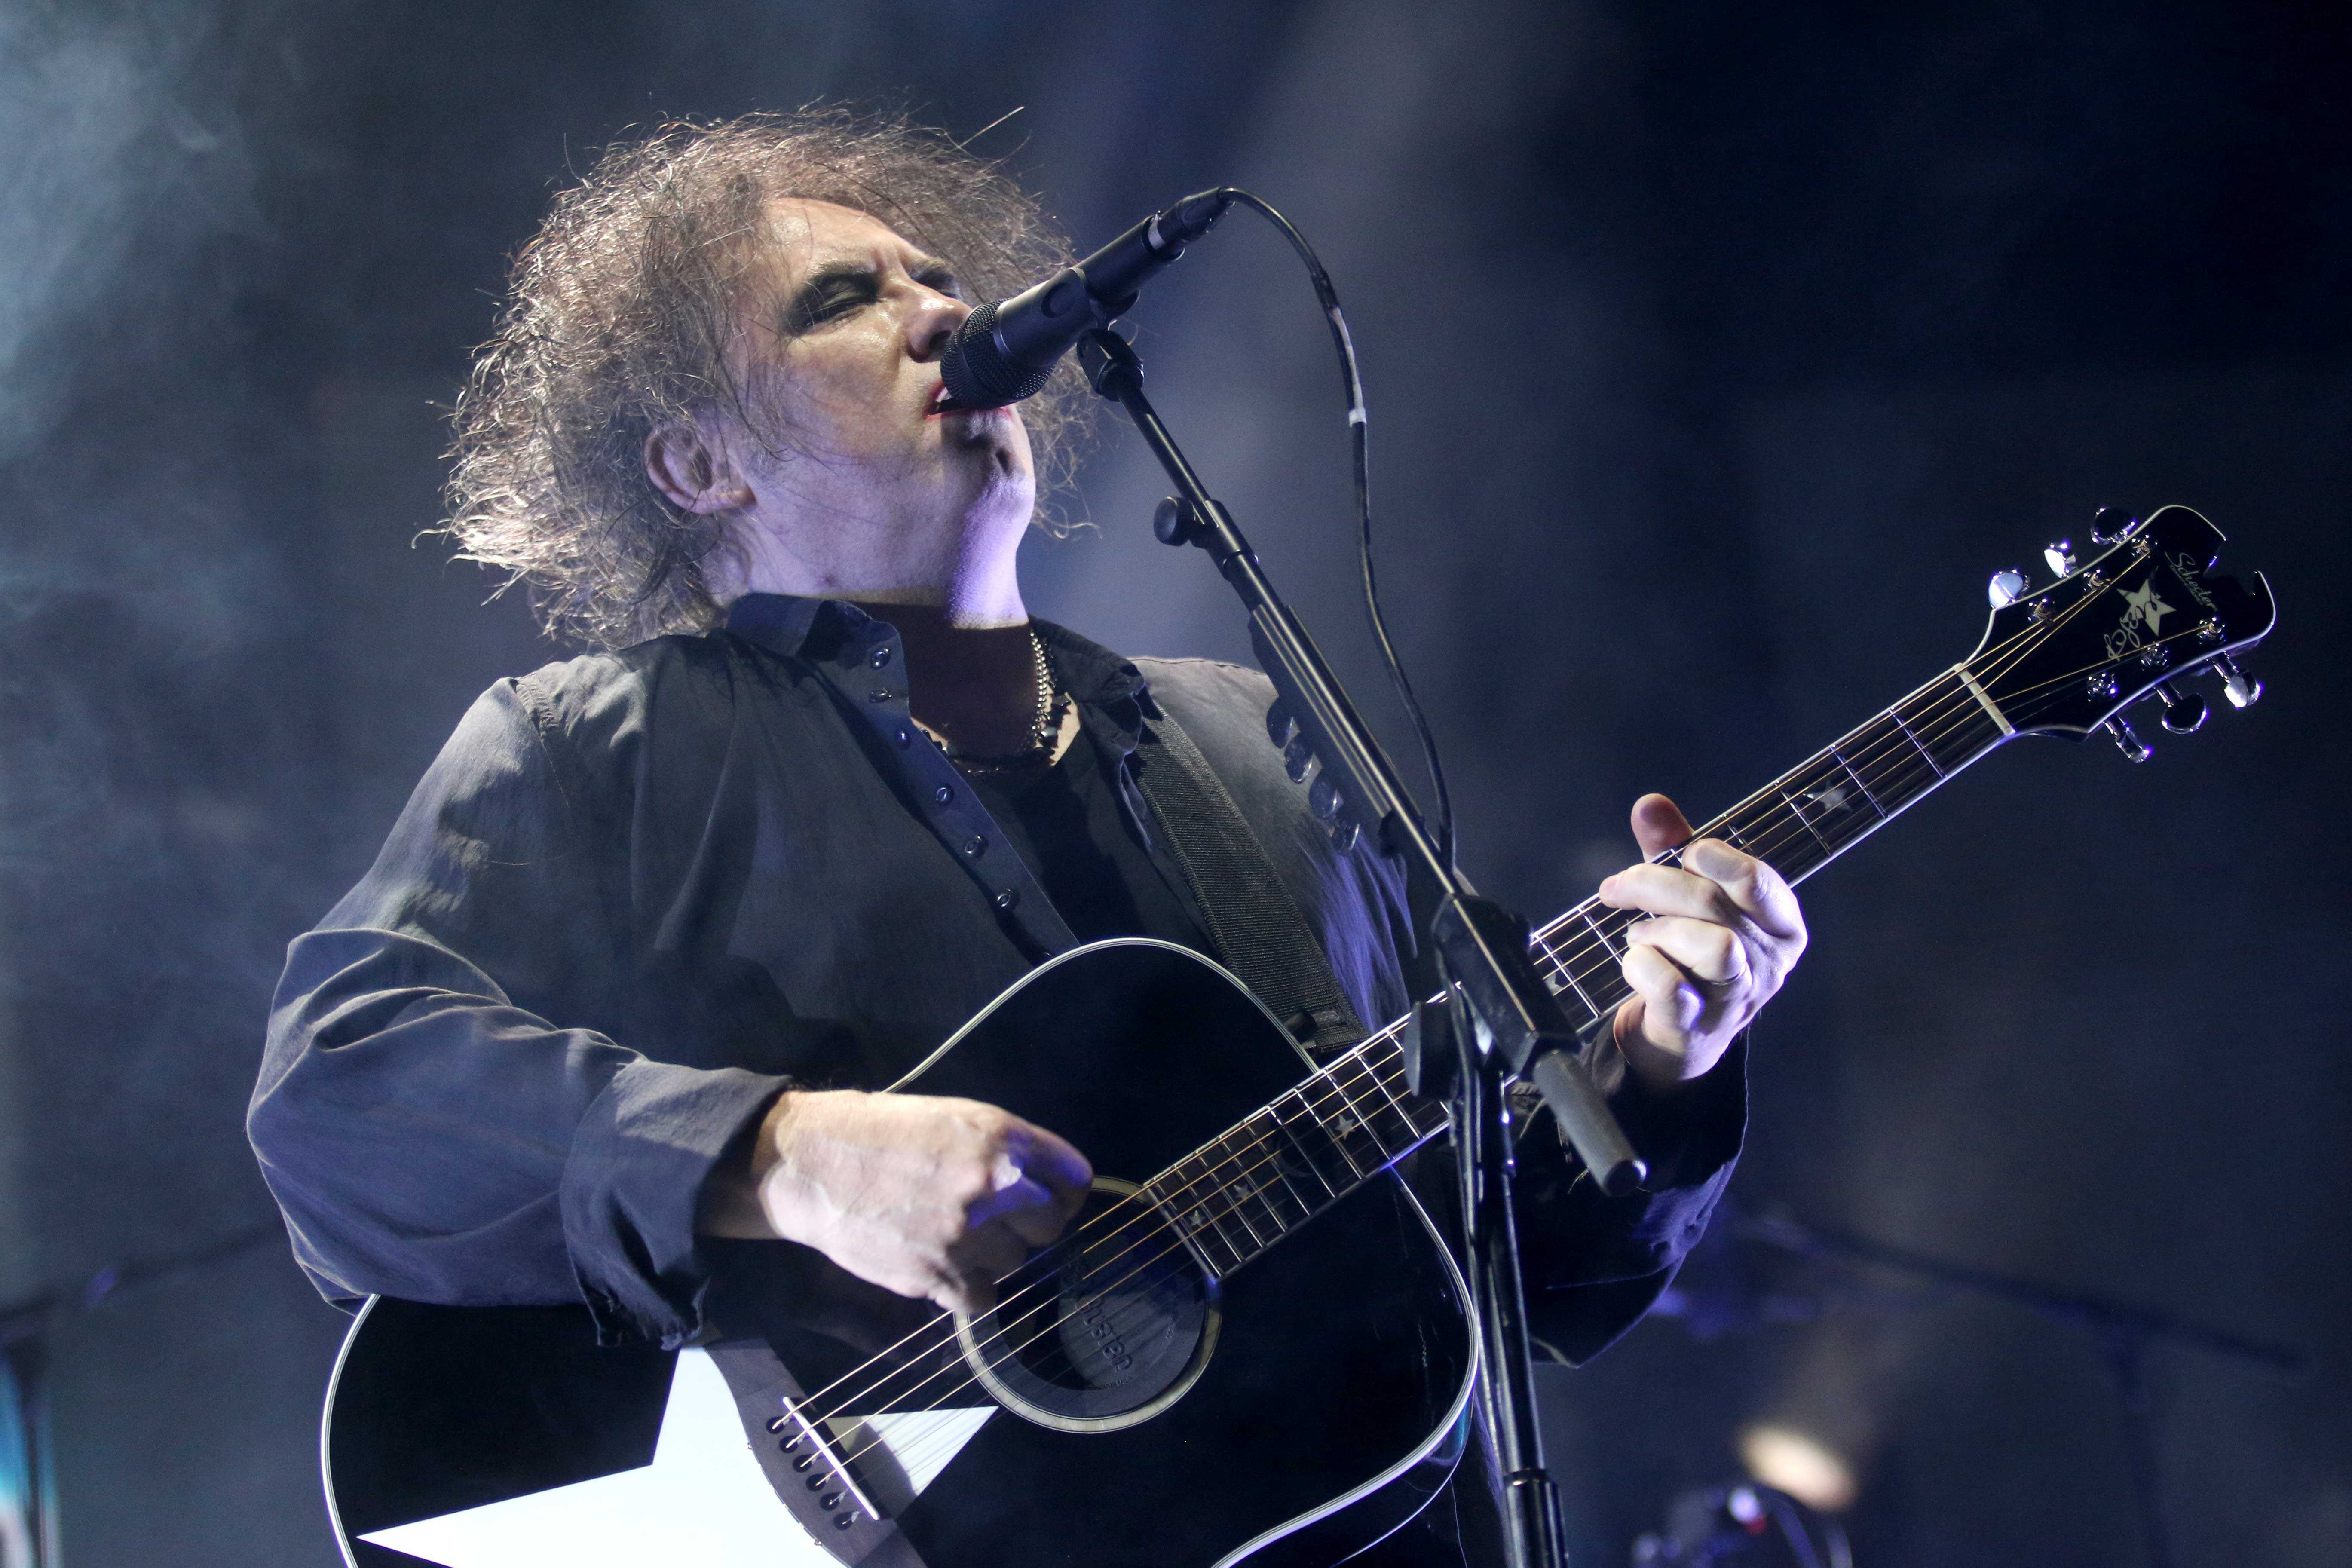 Lead singer of rock band The Cure performs at the Don Haskins Center on Tue. May 17.